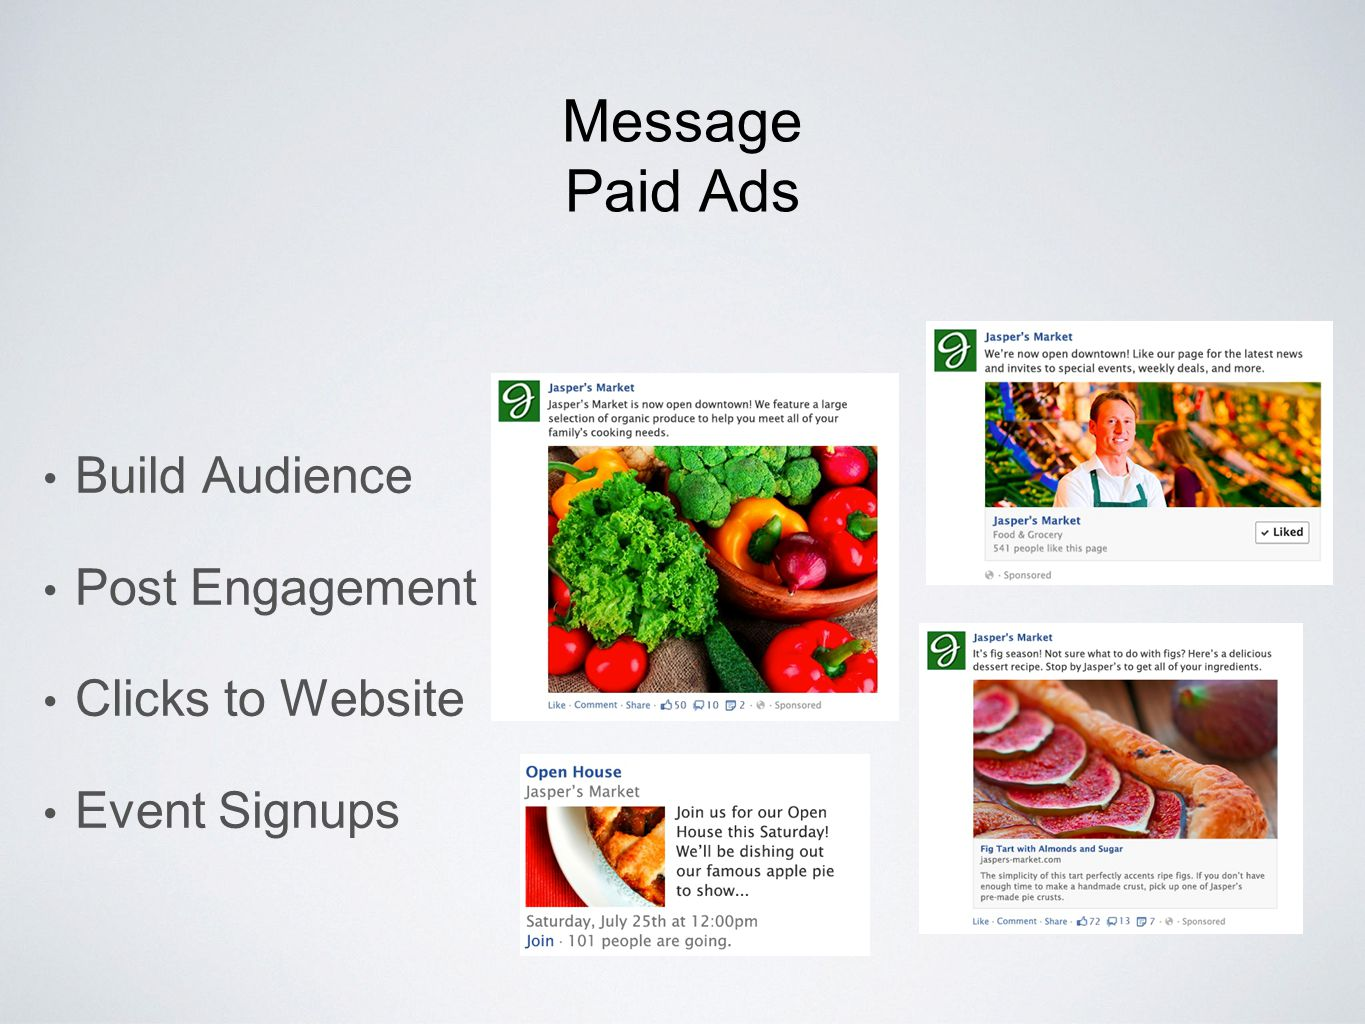 Message Paid Ads Build Audience Post Engagement Clicks to Website Event Signups